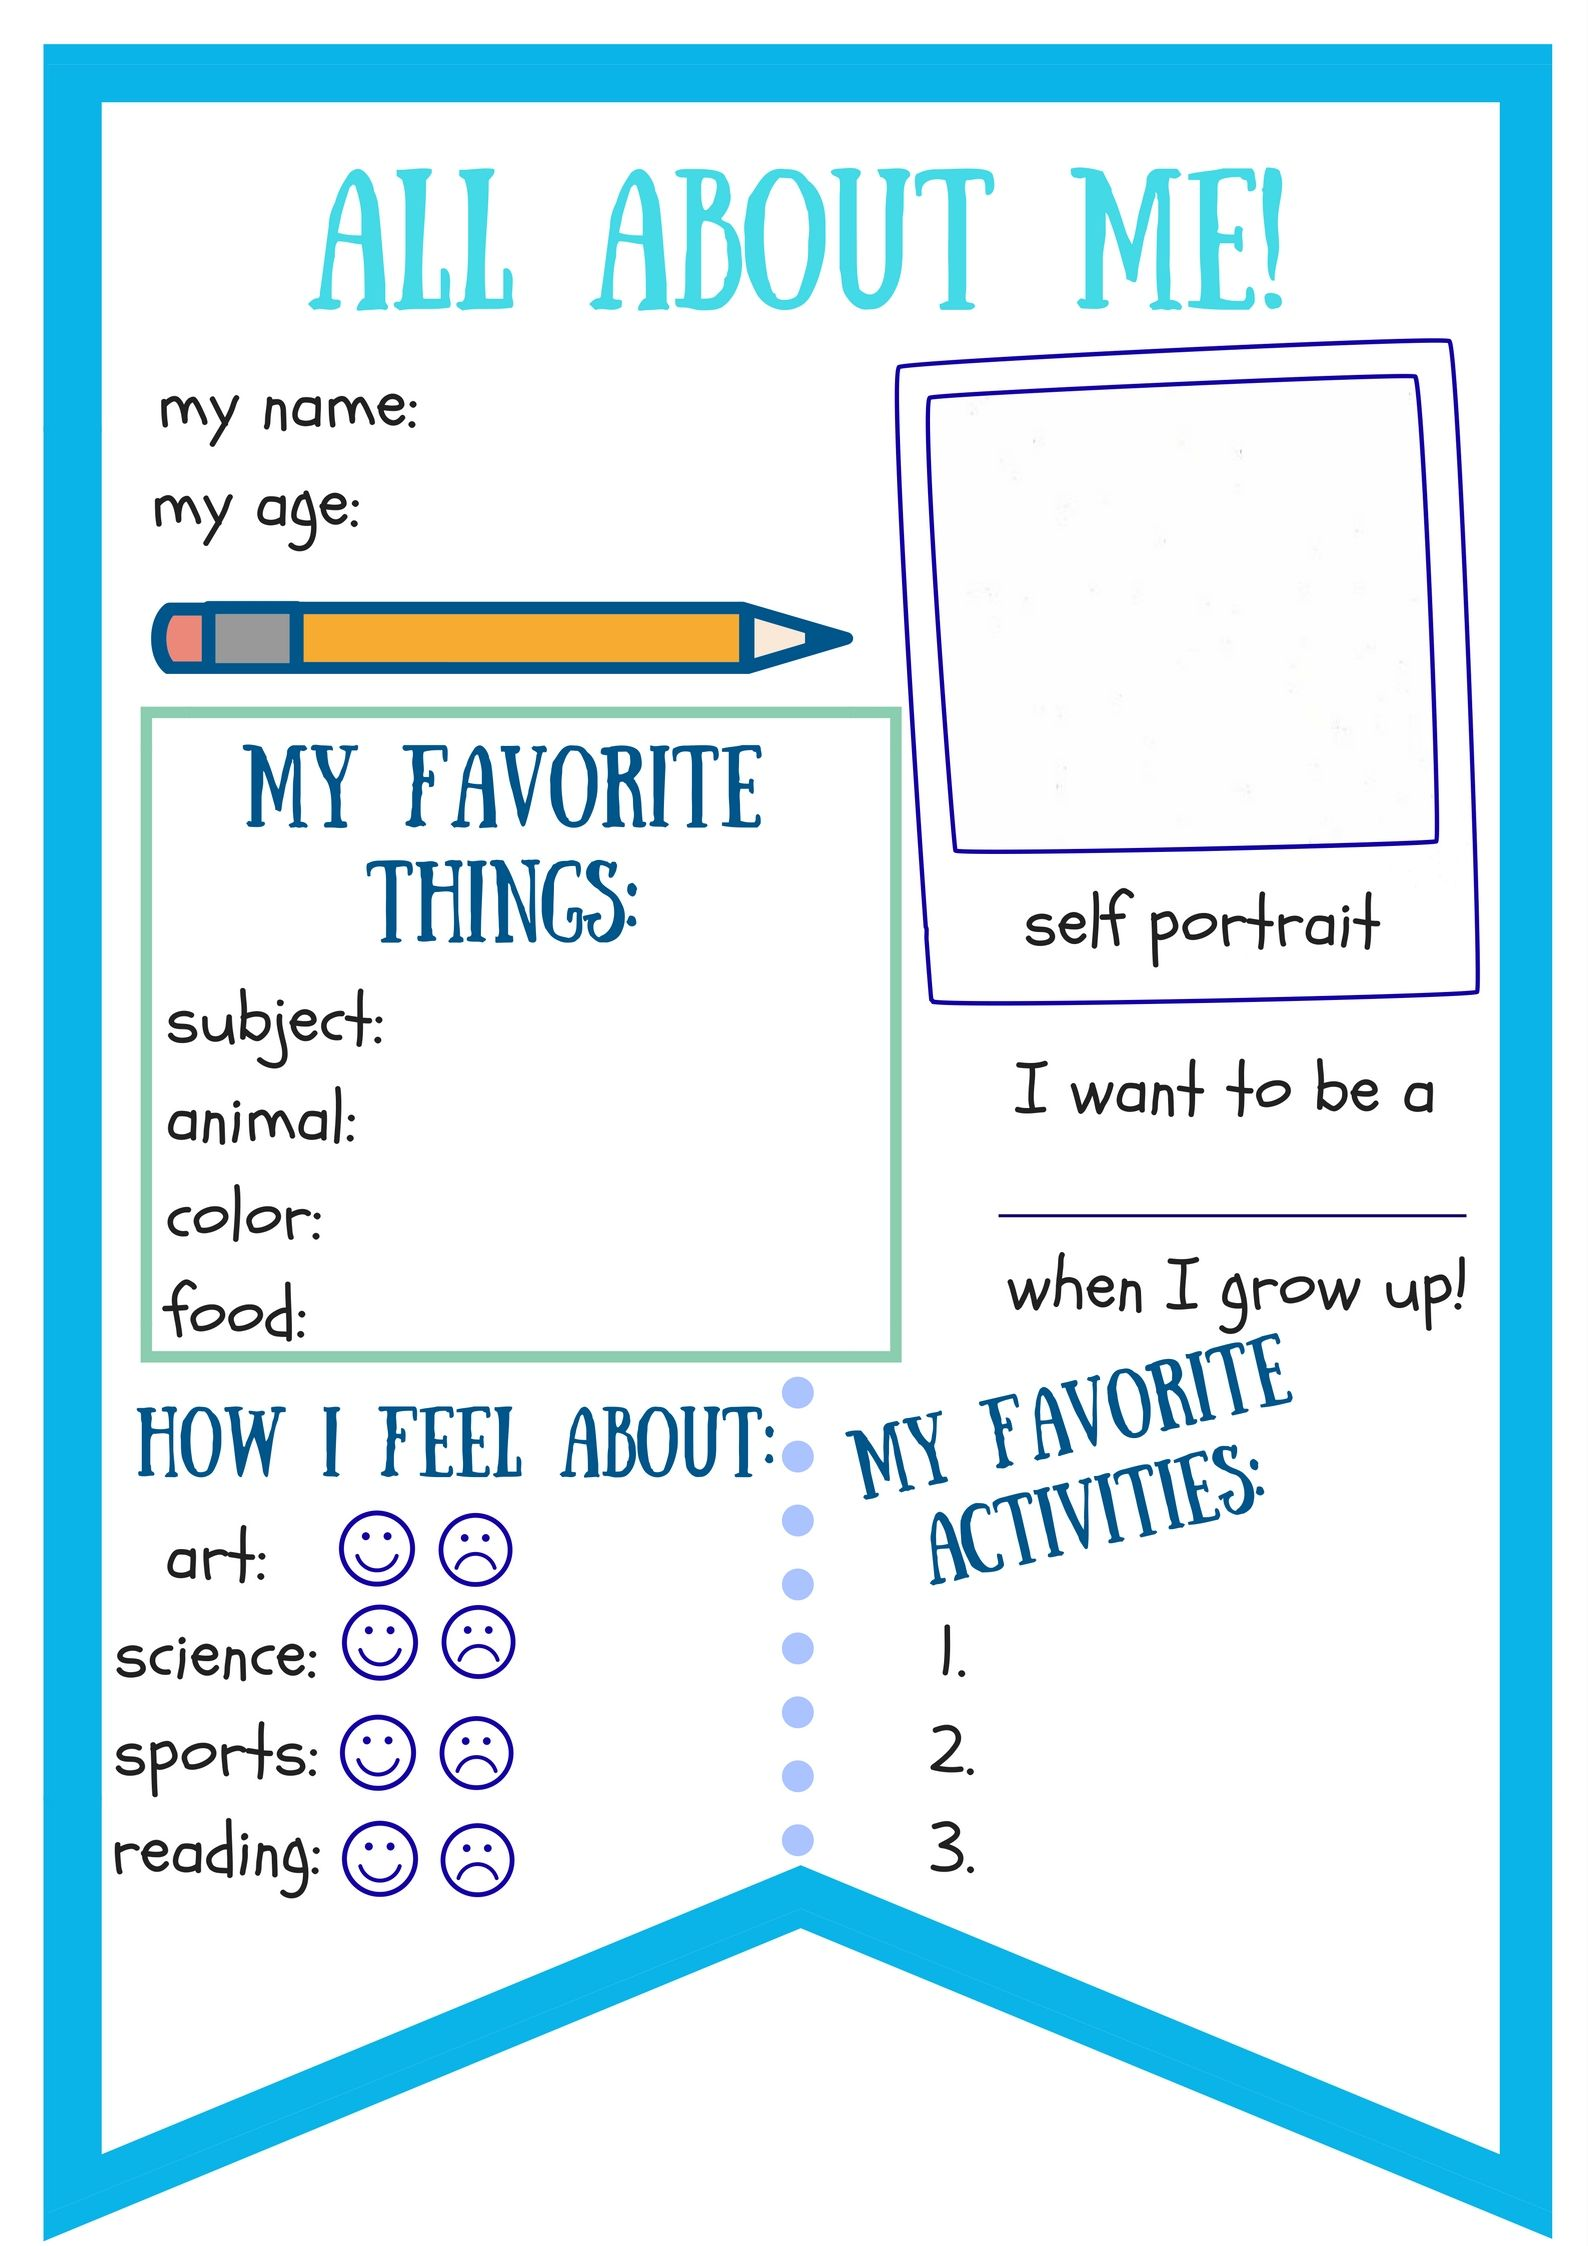 First day of school all about me worksheet or banner for classroom